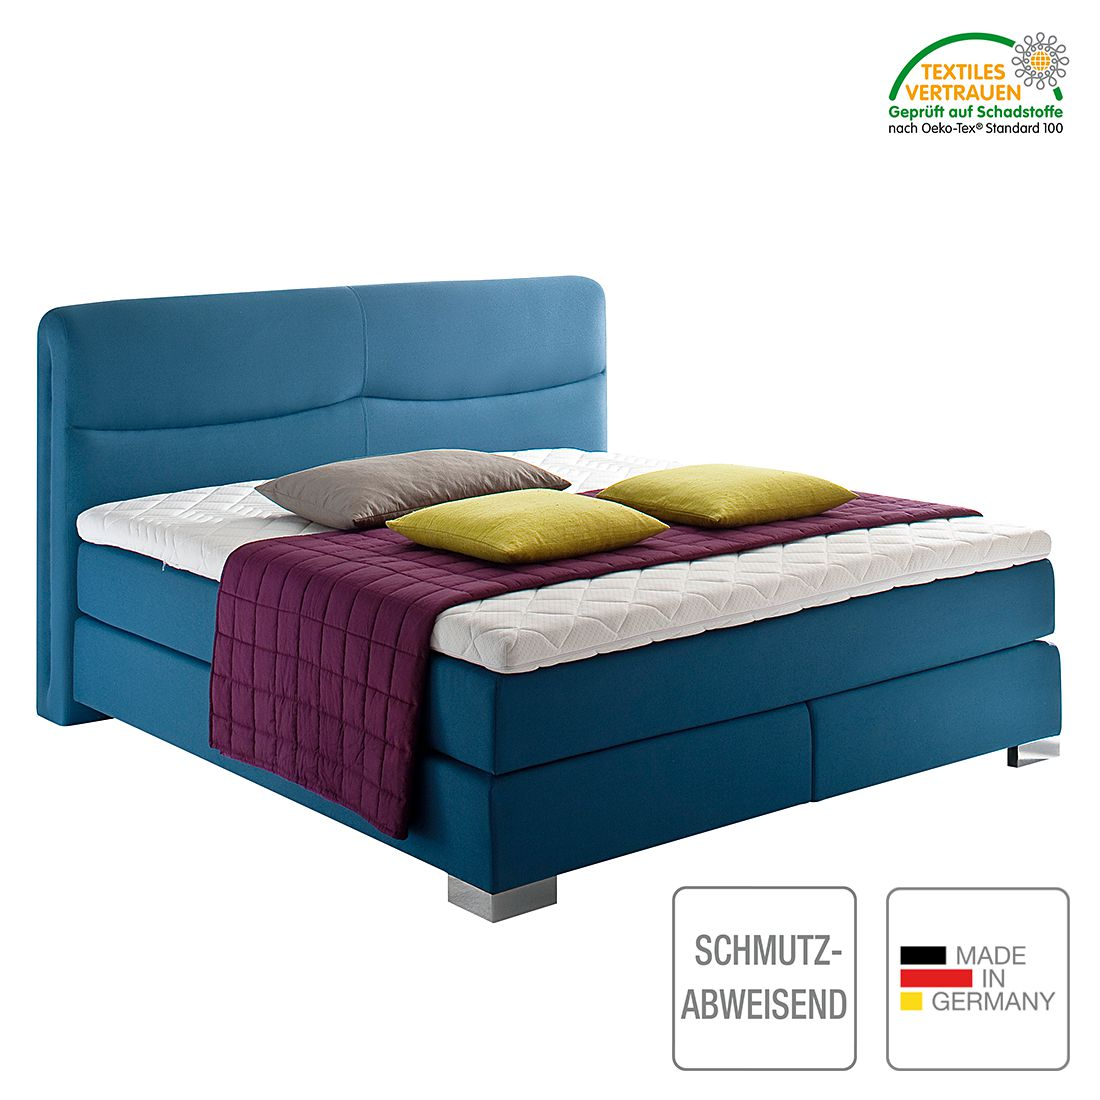 boxspringbett scala webstoff h2 bis 80 kg. Black Bedroom Furniture Sets. Home Design Ideas